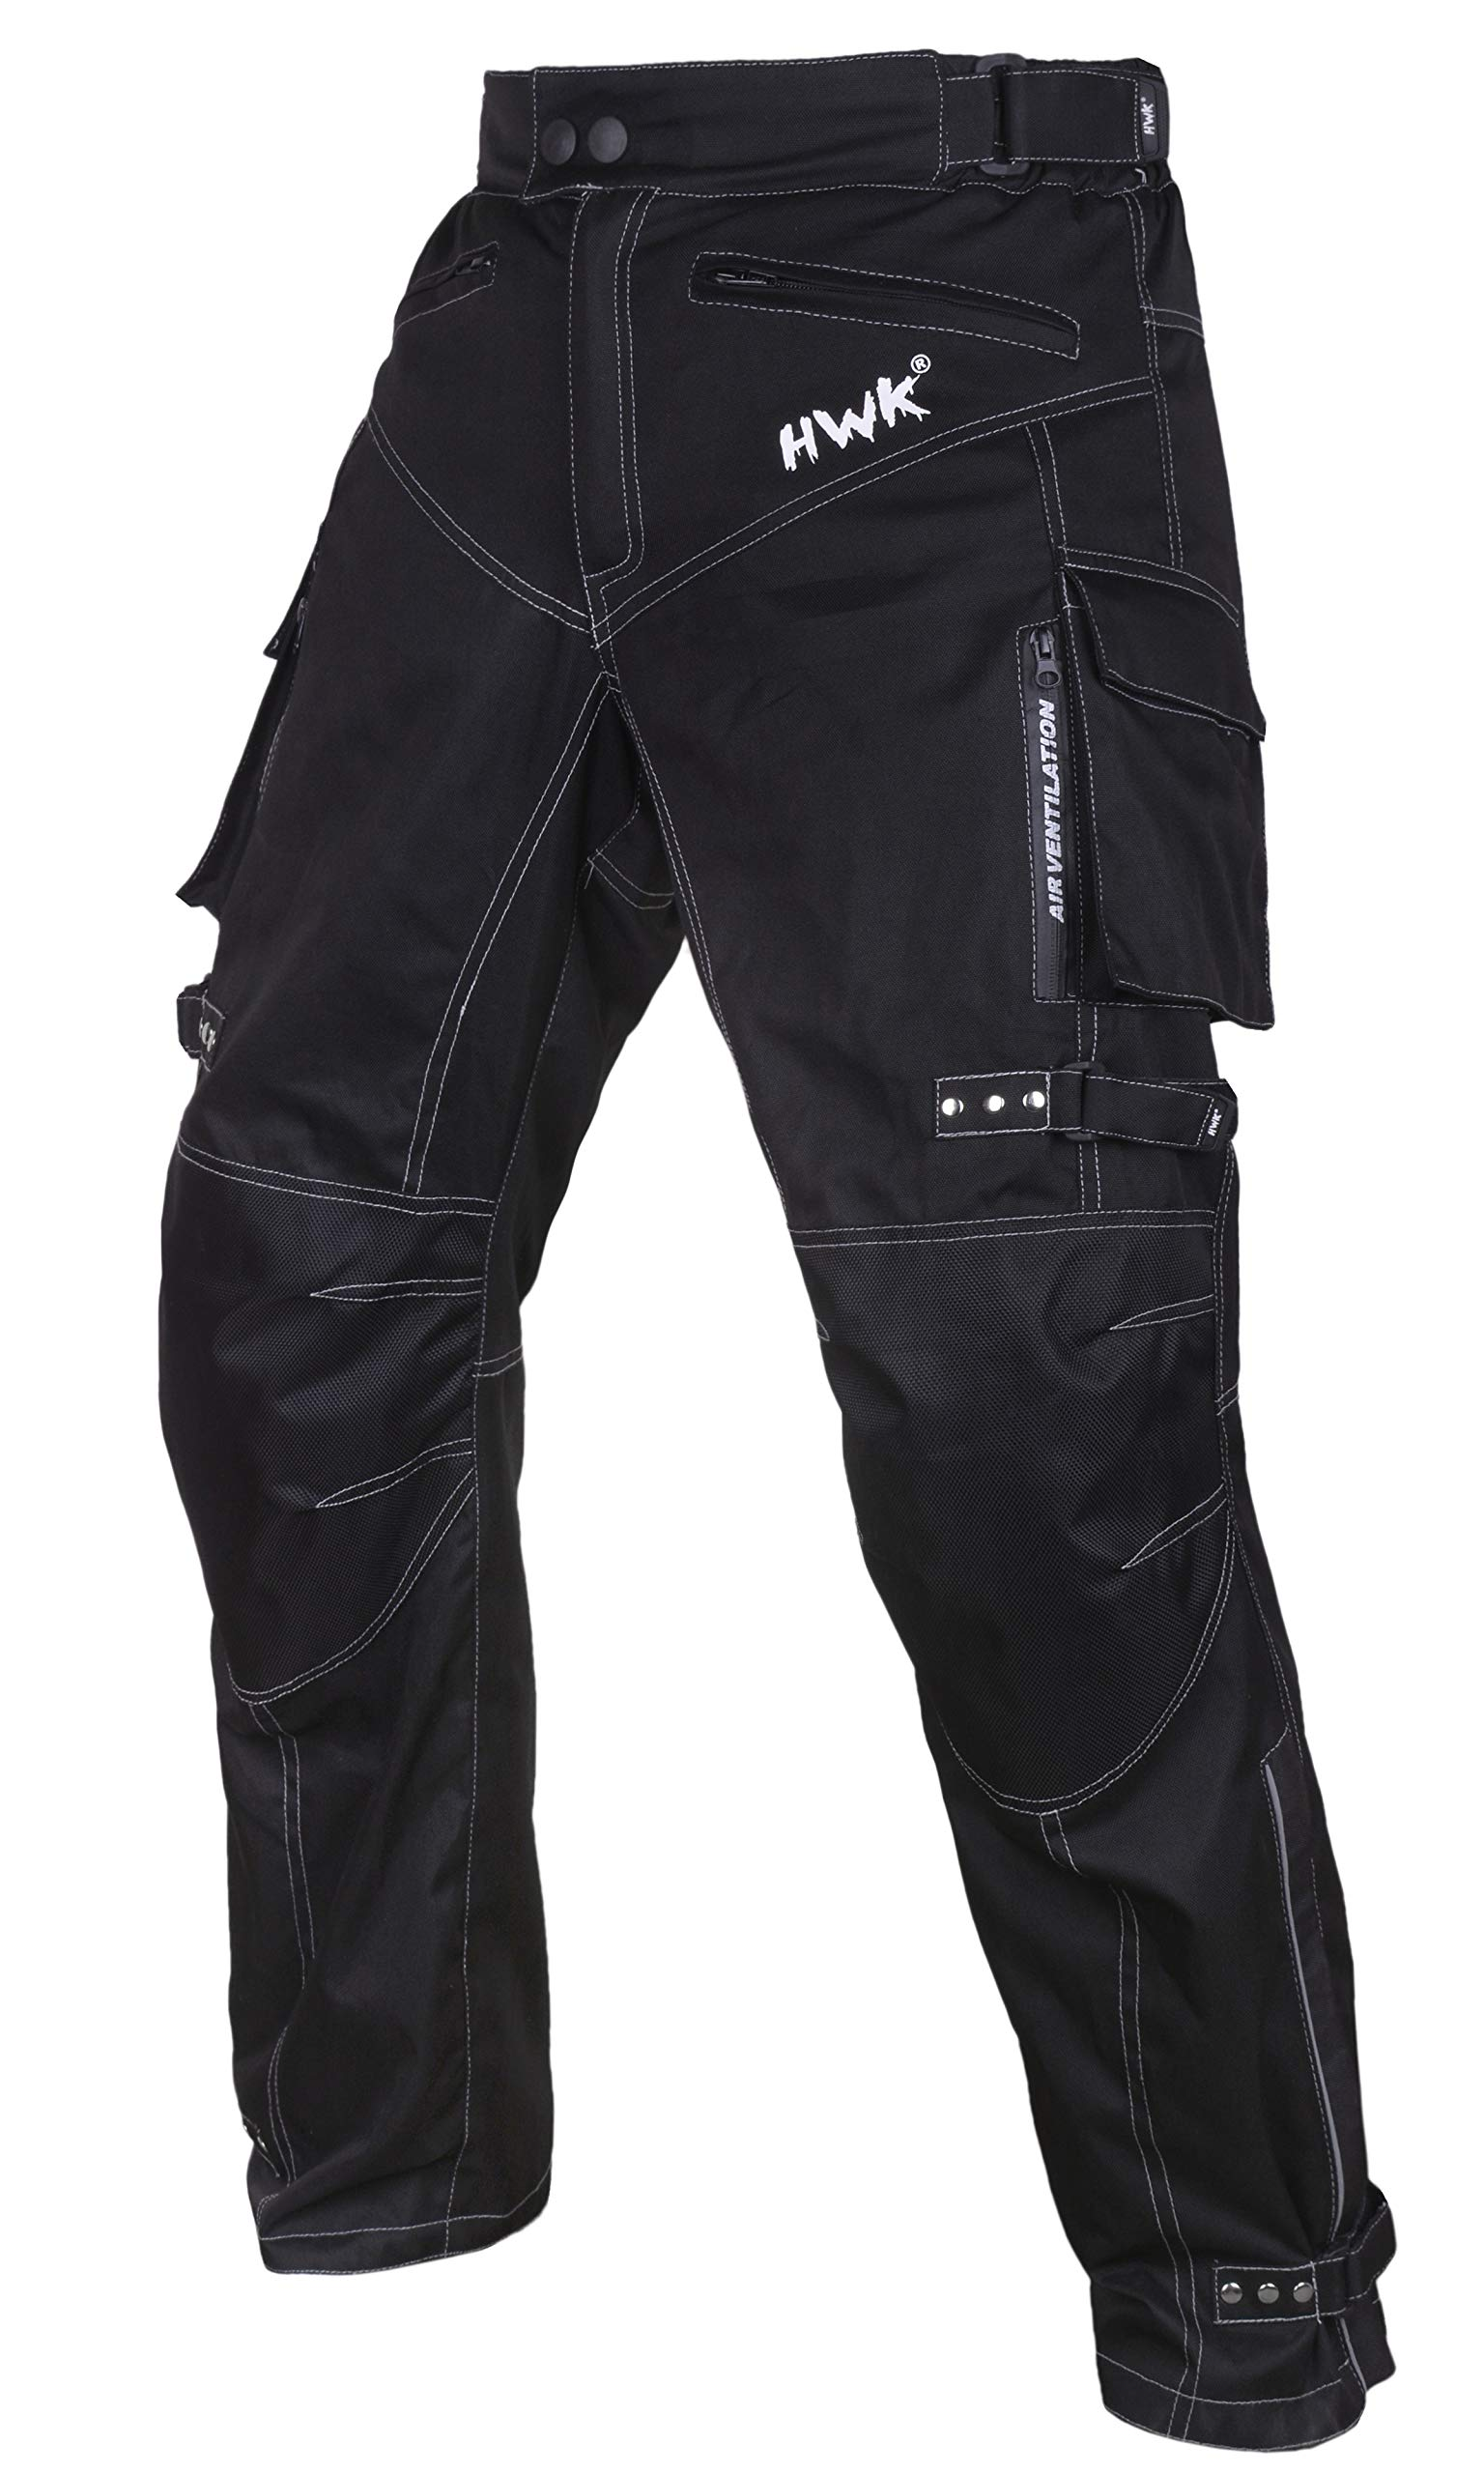 Motorcycle Pants For Men Dualsport Motocross Motorbike Pant Riding Overpants Enduro Adventure Touring Waterproof CE Armored All-Weather (Waist32''-34'' Inseam30'')